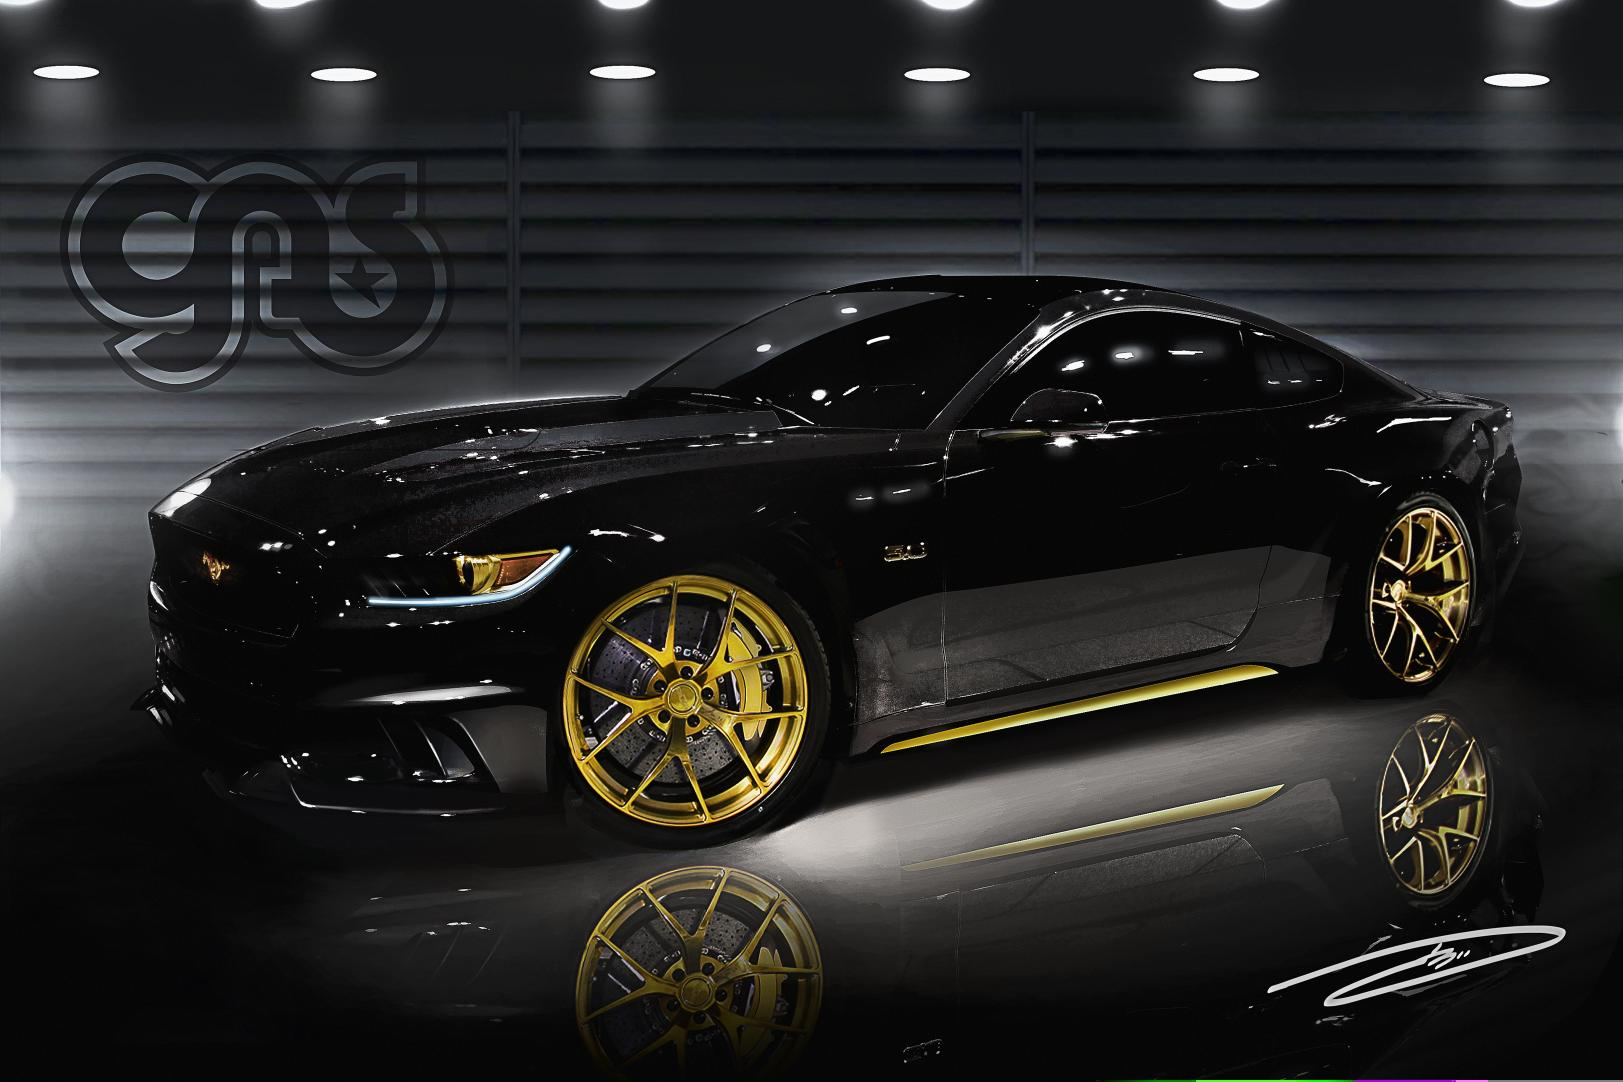 Acura Ilx Lowering Springs >> 2015 Ford Mustang to Take SEMA by Storm With Over 12 Custom Vehicles - autoevolution